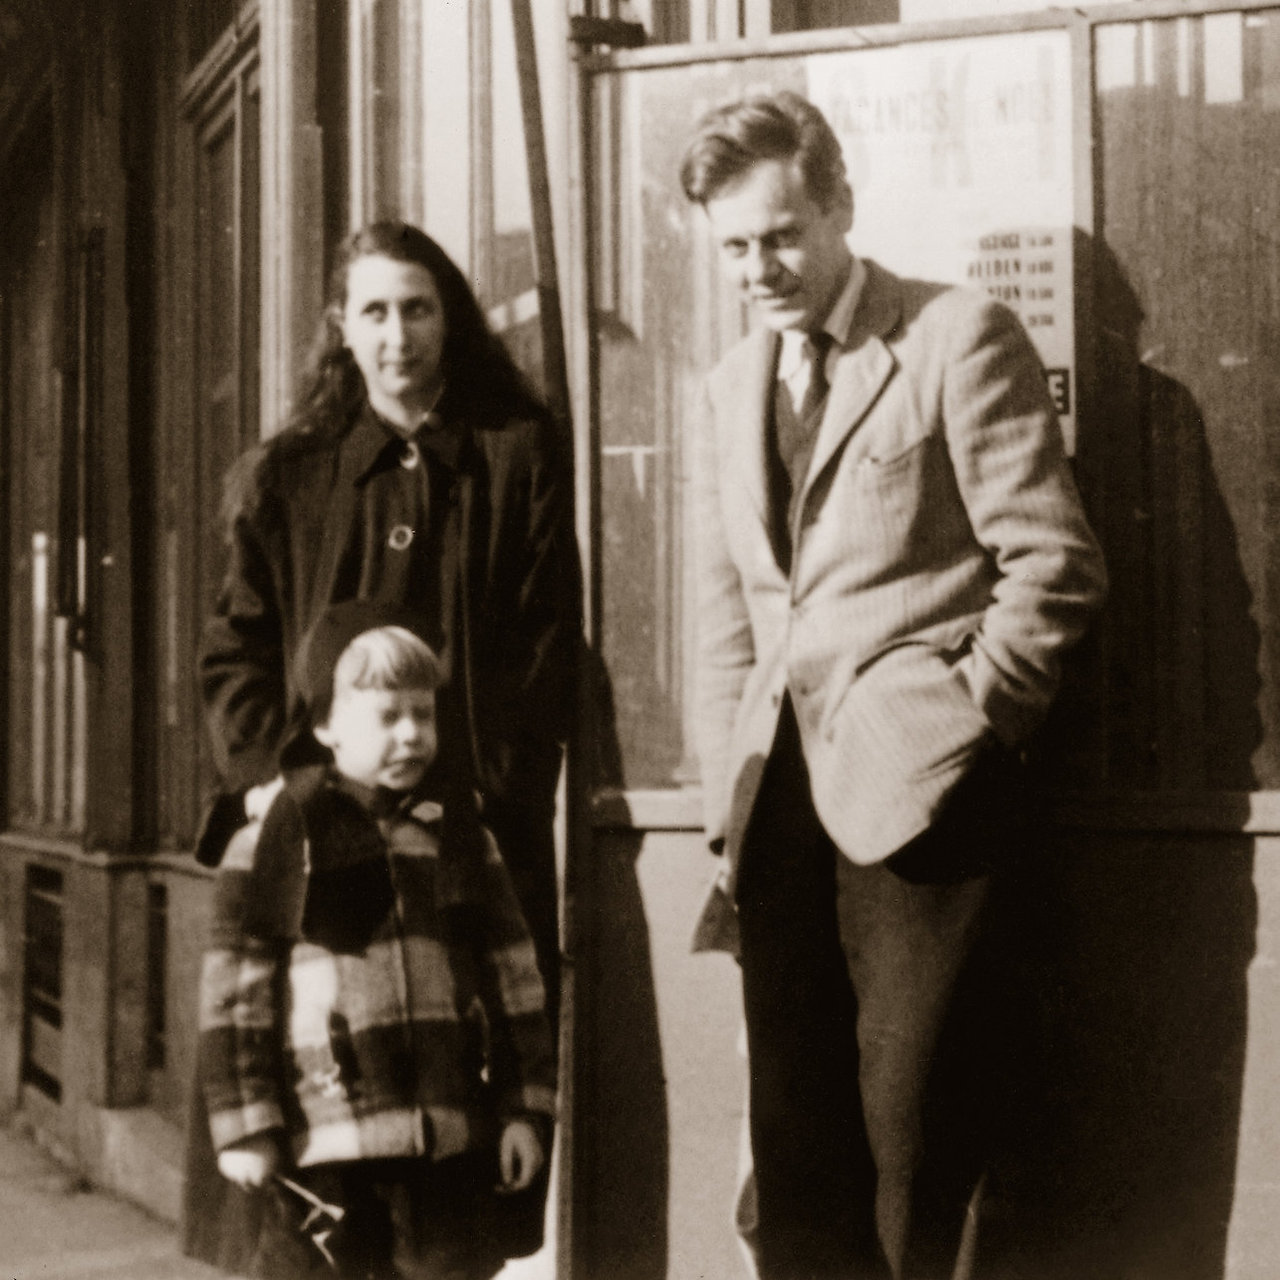 Paul de Man with his second wife, Patricia, and their son, in Paris, in 1955